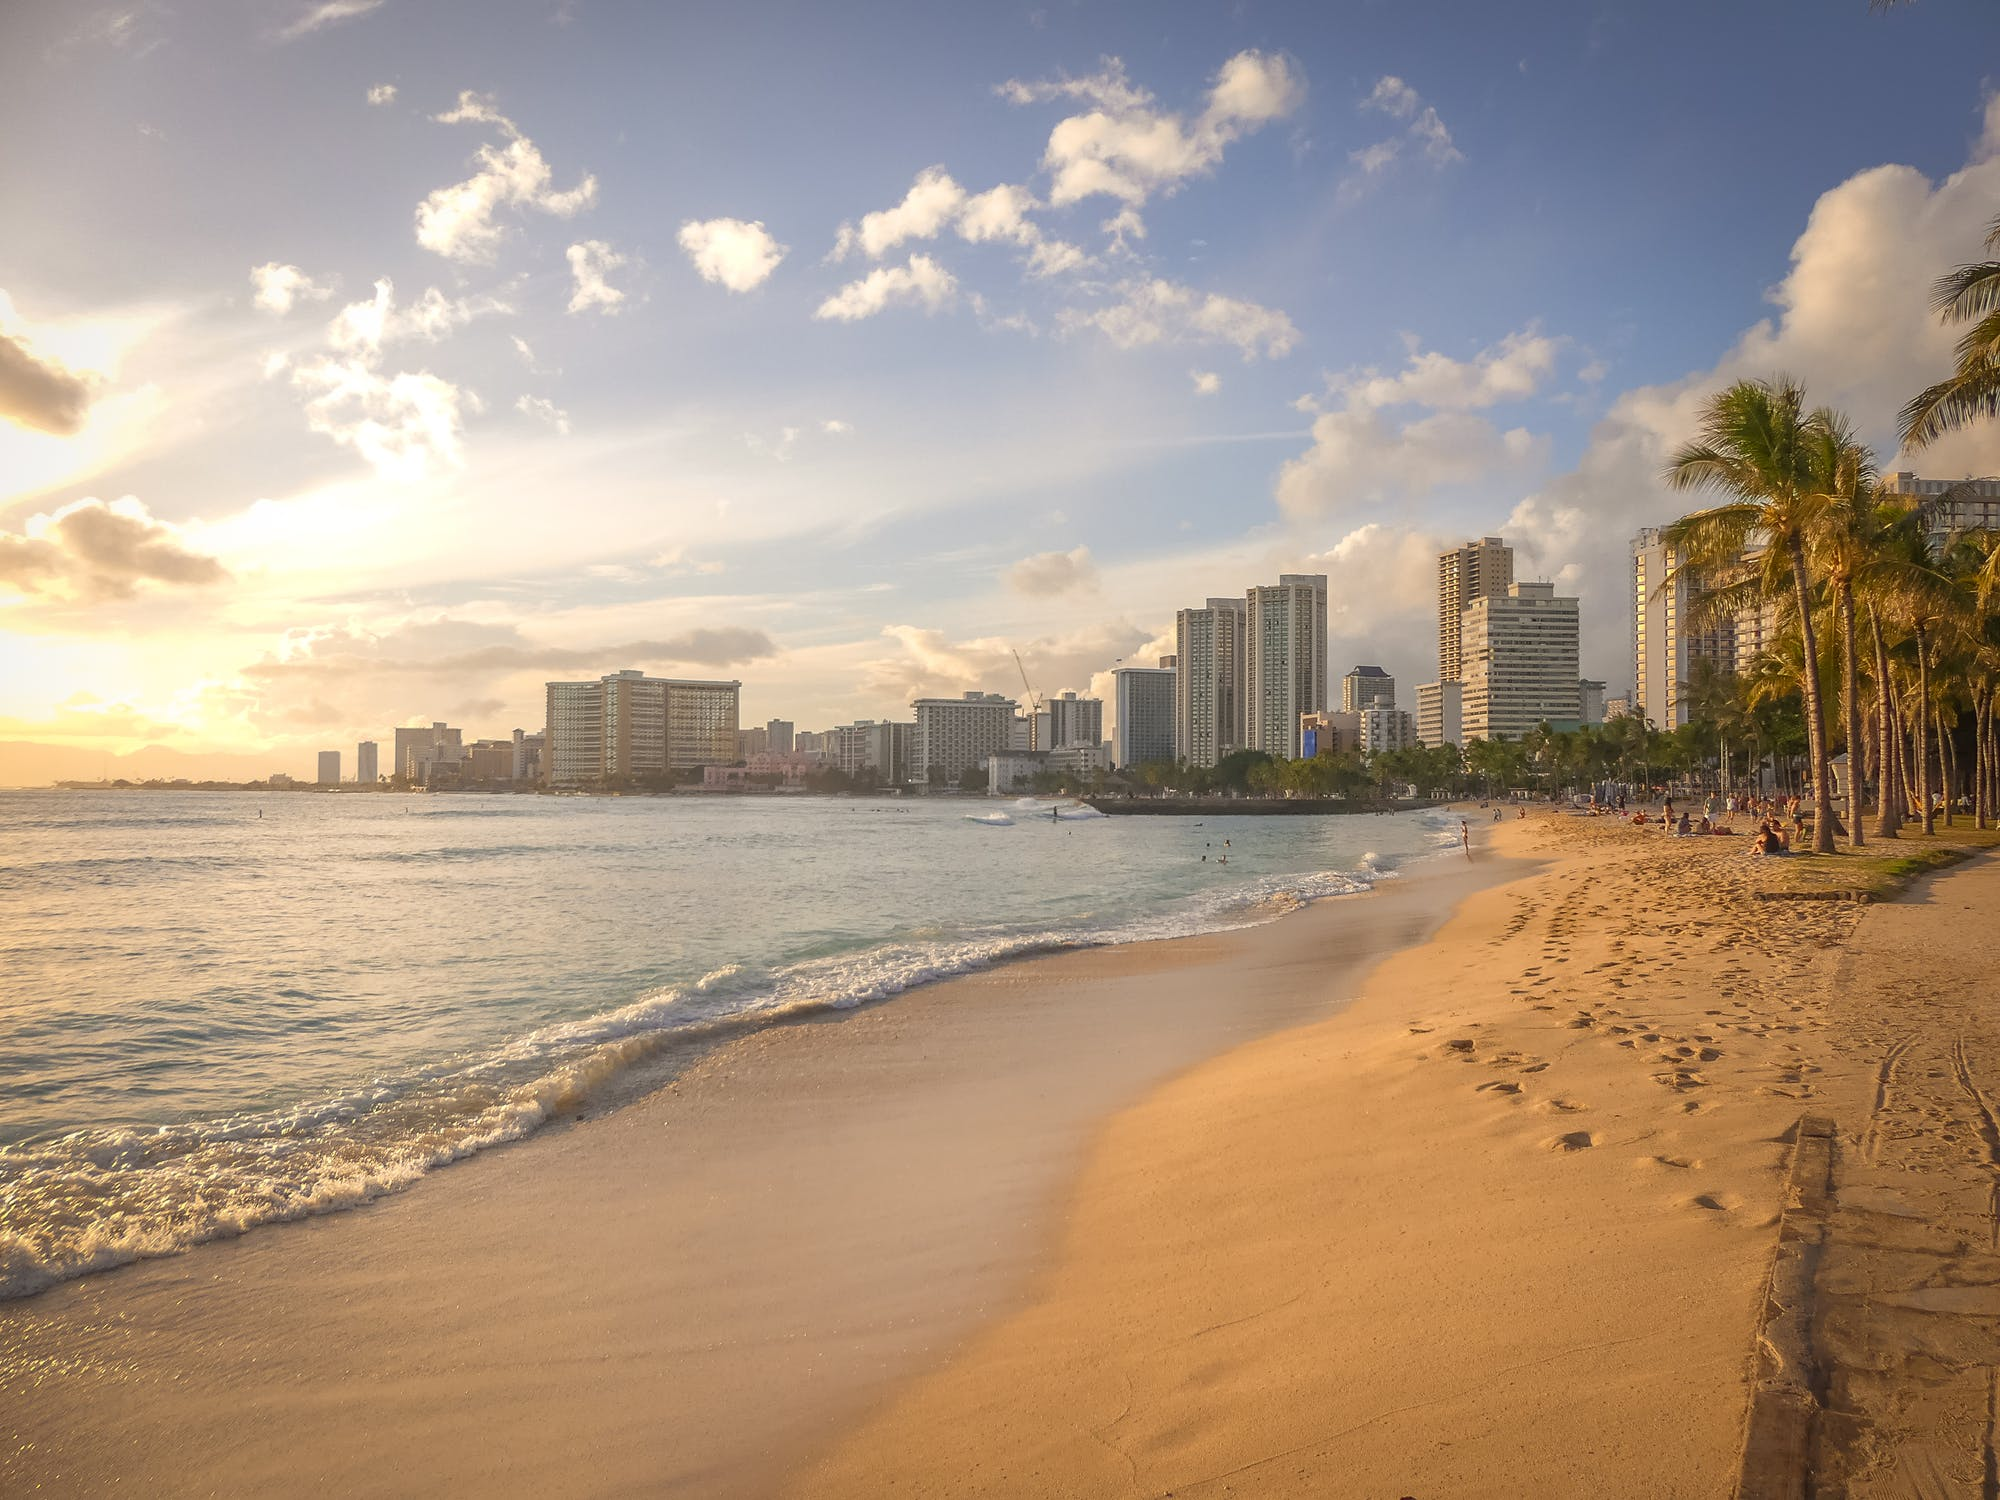 Vacation Destinations to Add to Your Bucket List